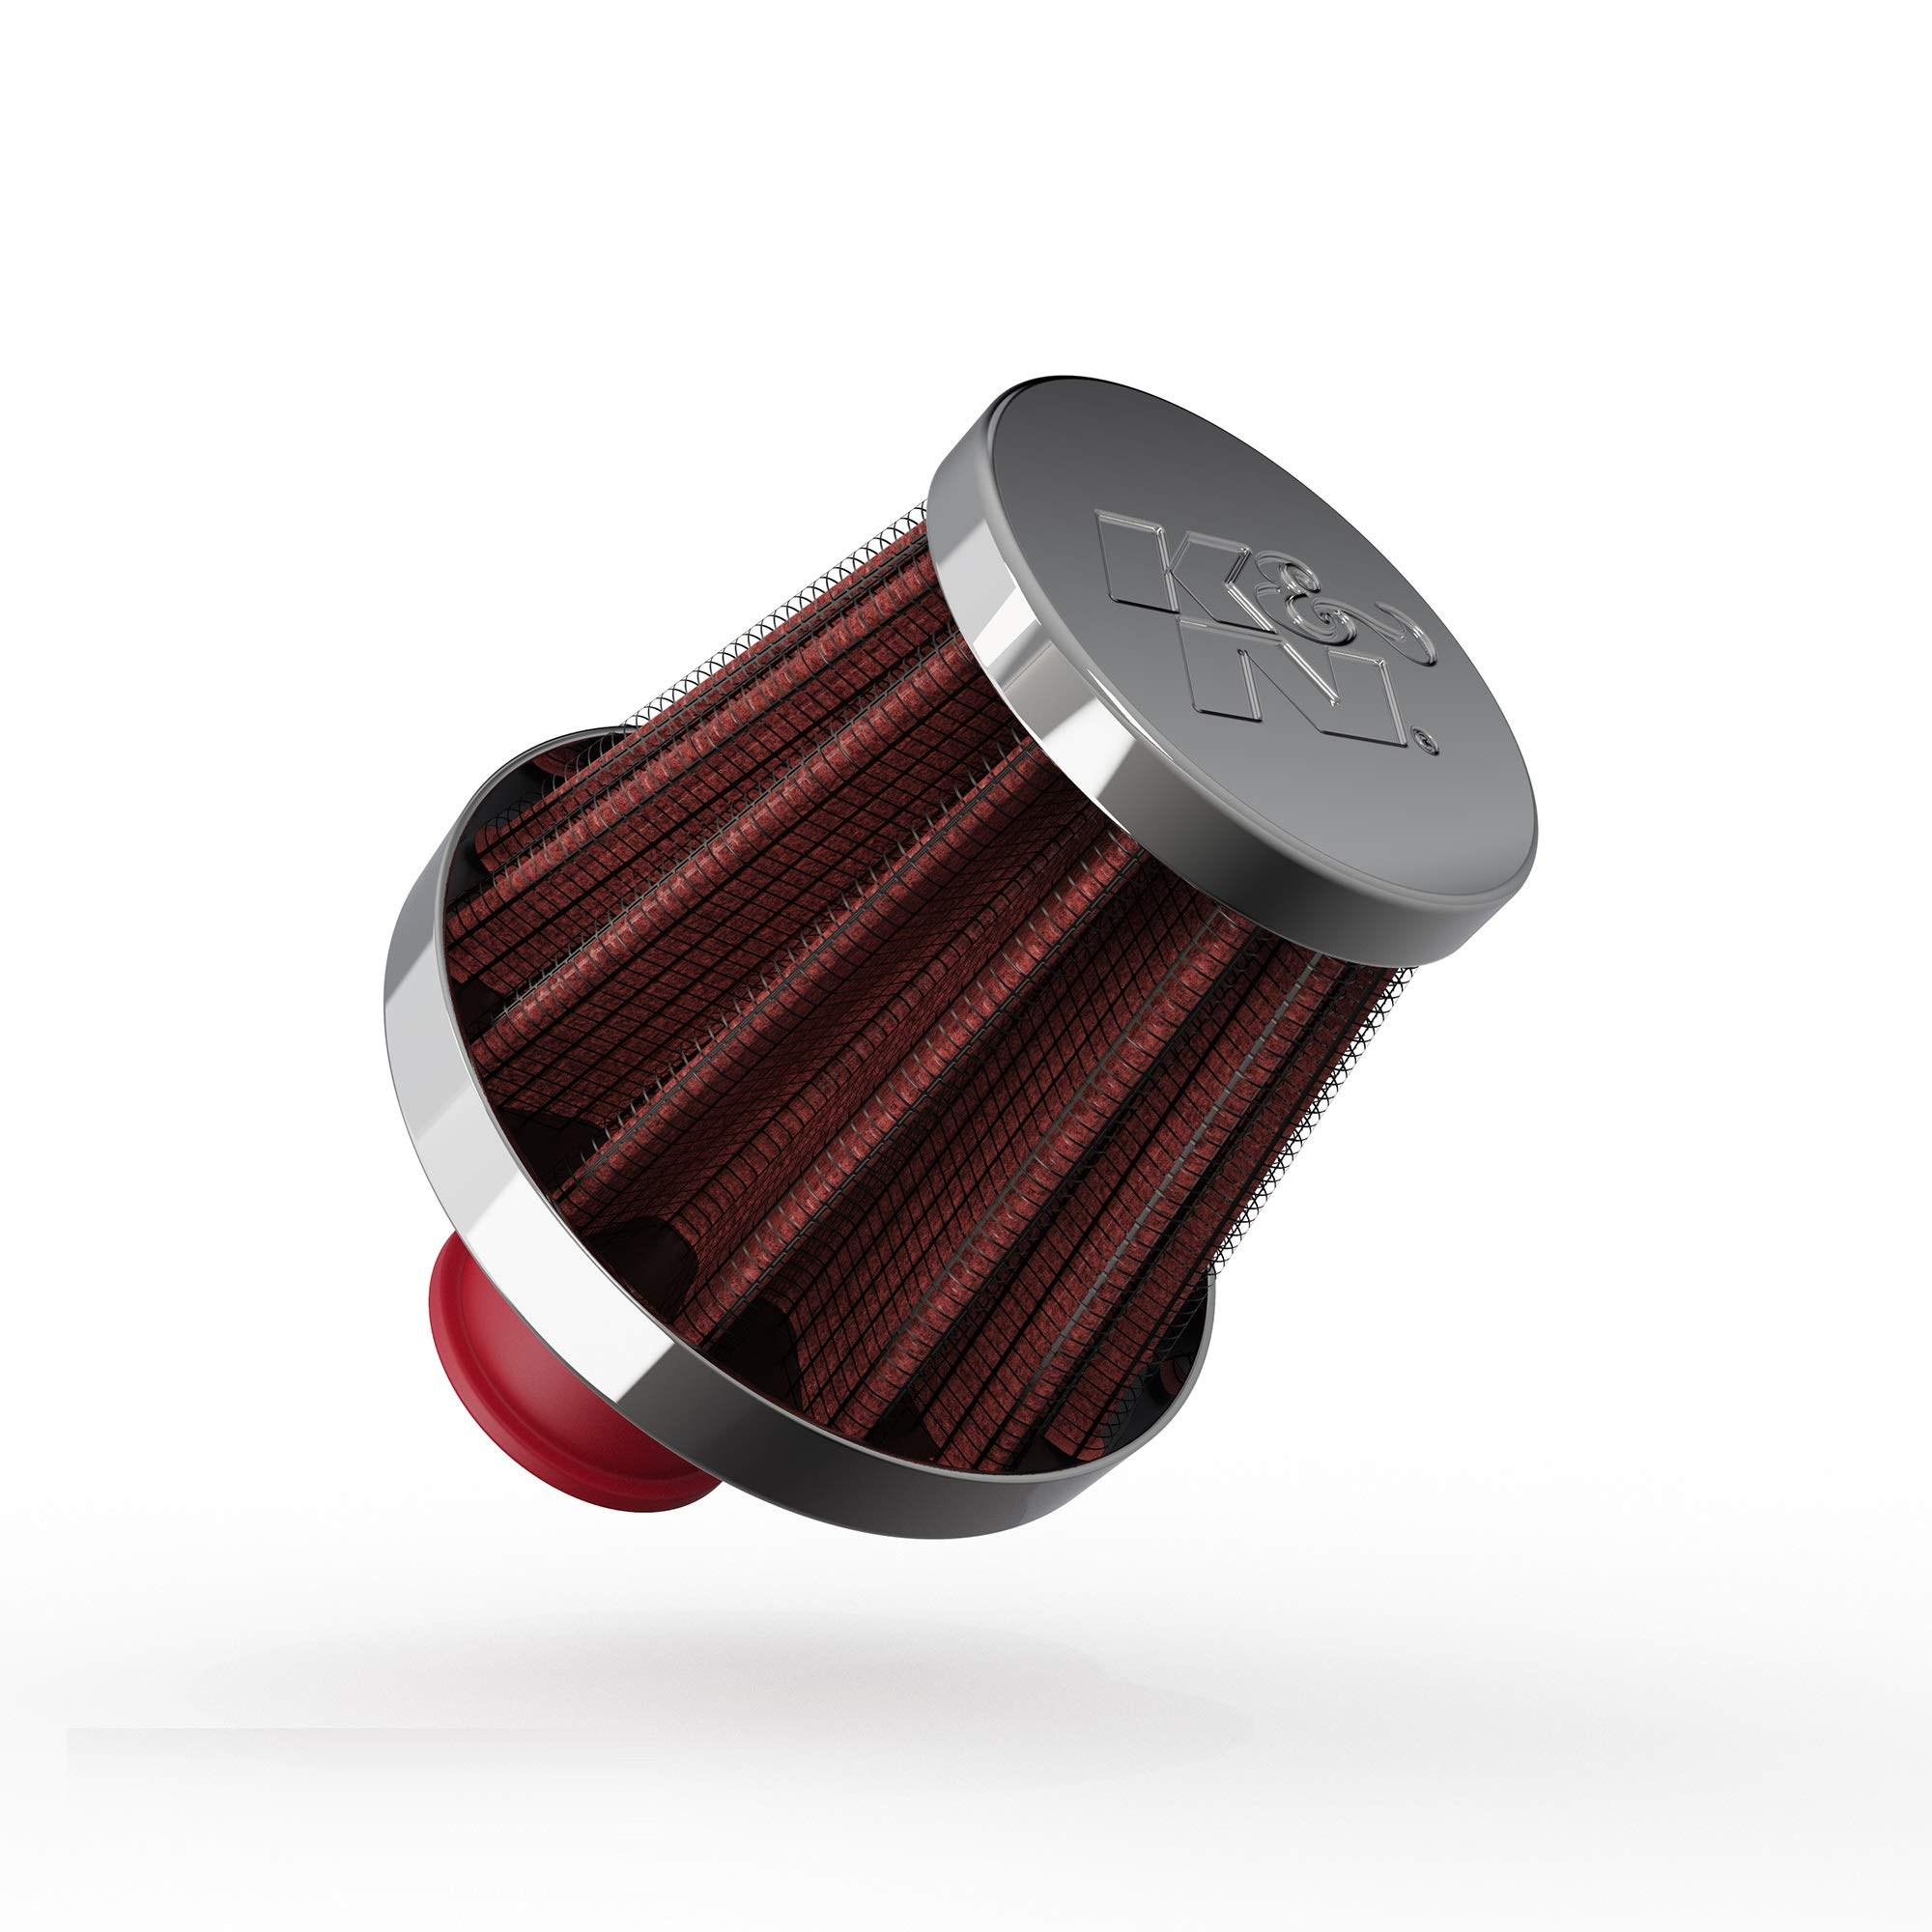 K&N Vent Air Filter/Breather: High Performance, Premium, Washable, Replacement Engine Filter: Flange Diameter: 0.375 In, Filter Height: 1.75 In, Flange Length: 0.5 In, Shape: Breather, 62-1600RD